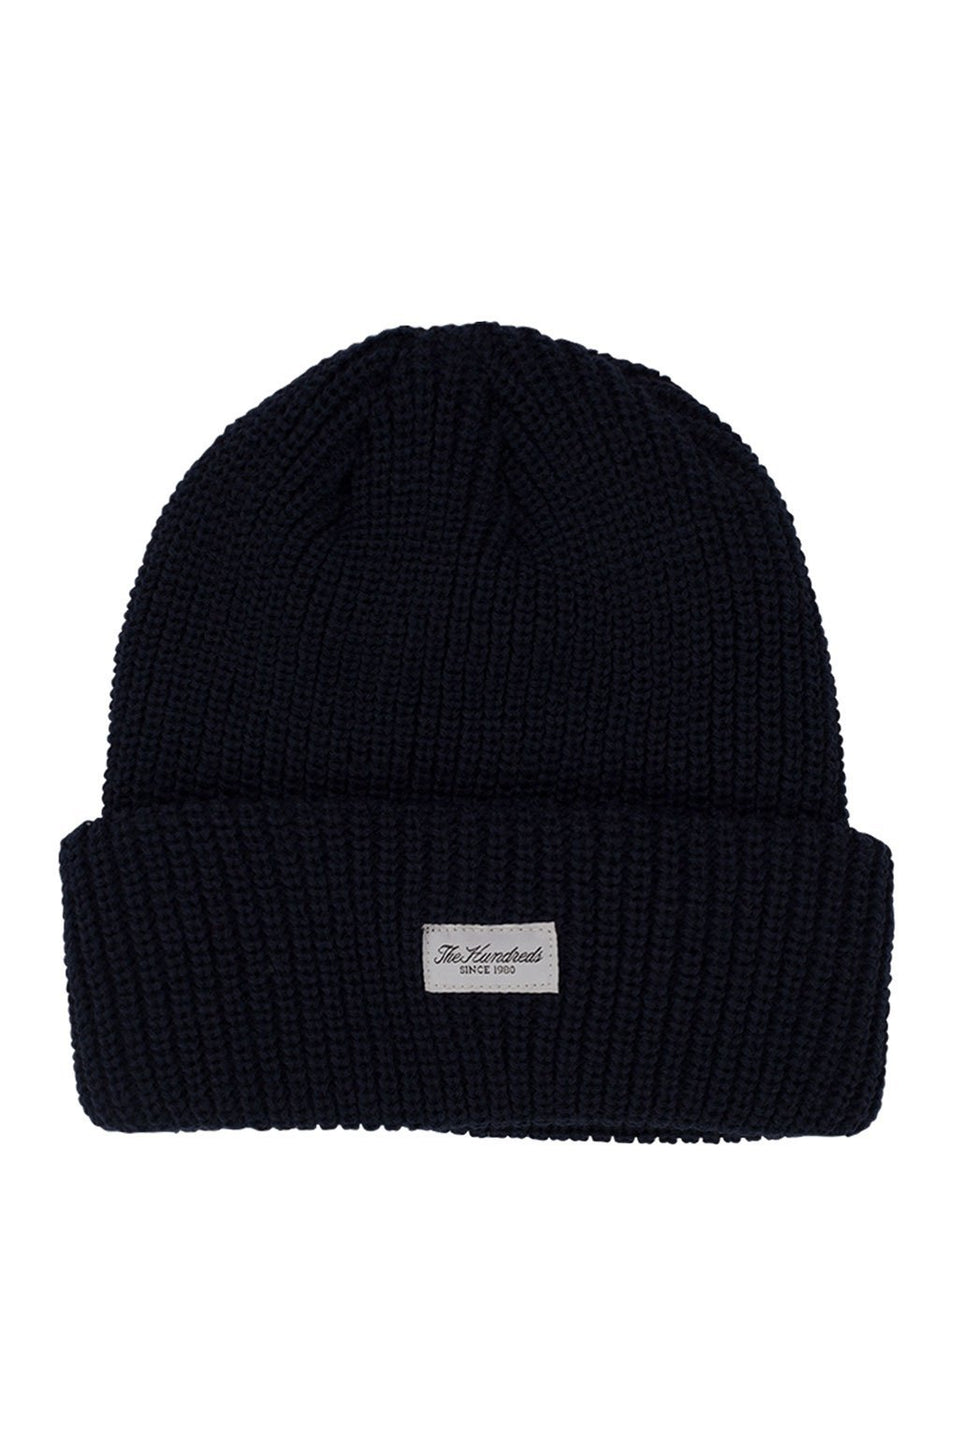 Crisp 2018 Beanie-HEADWEAR-The Hundreds UK